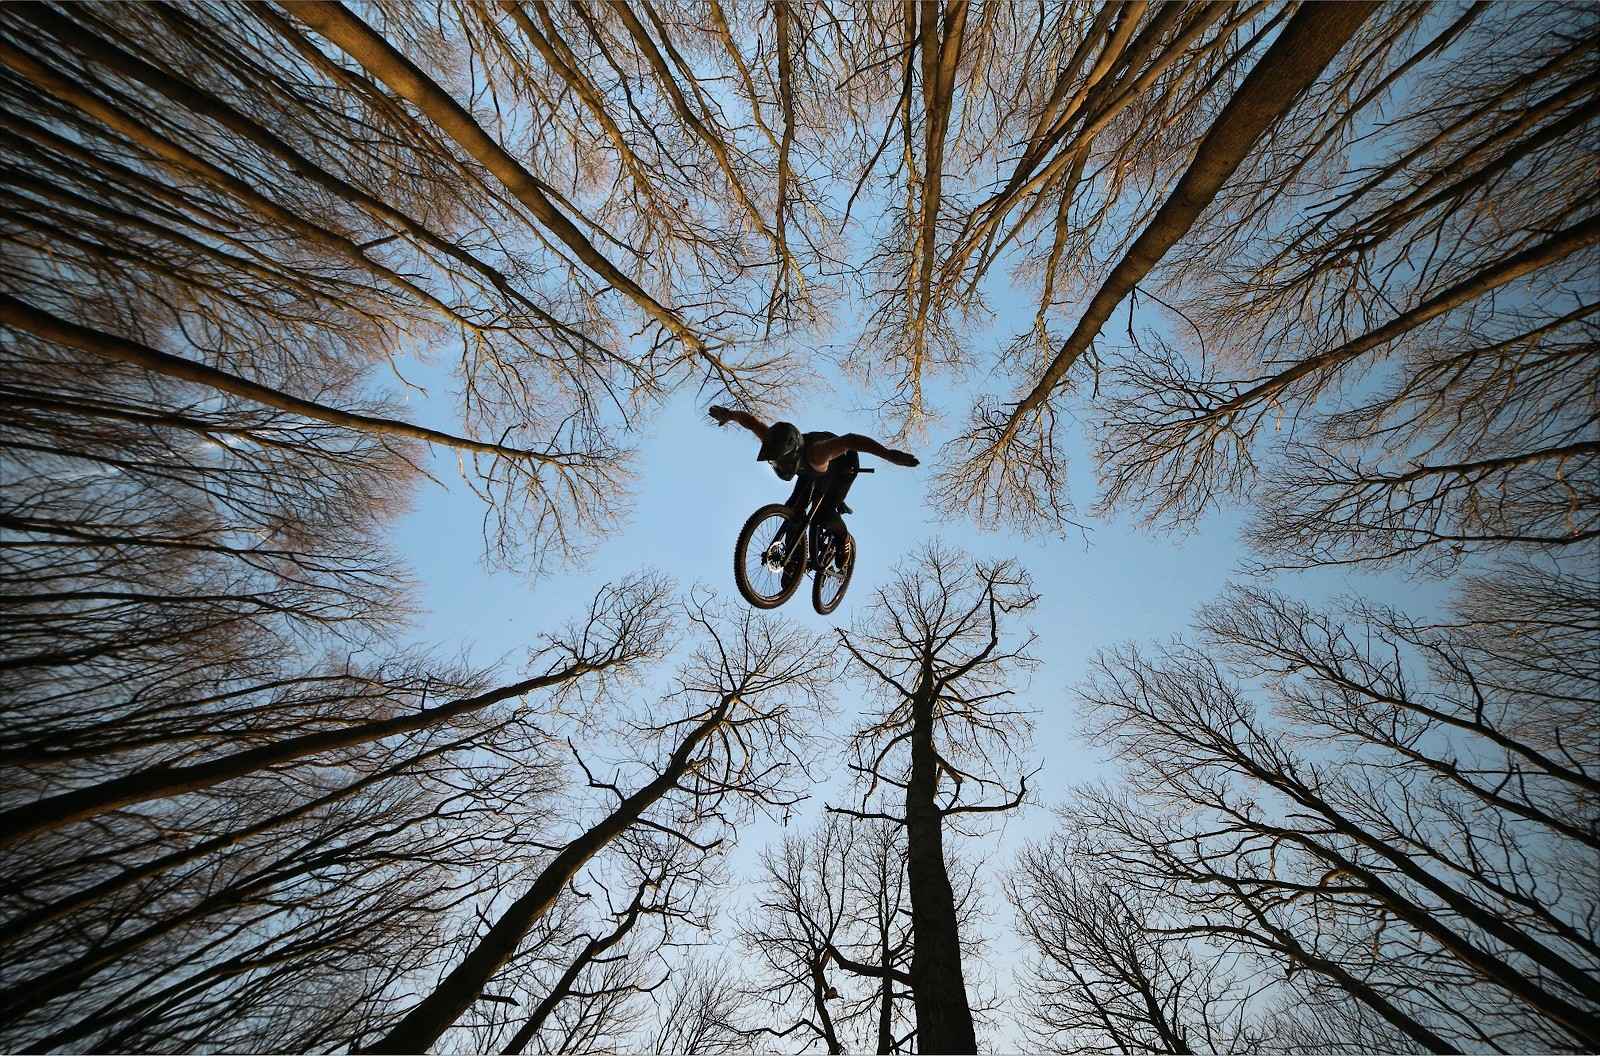 Flip no hander - ThomasGaffney - Mountain Biking Pictures - Vital MTB